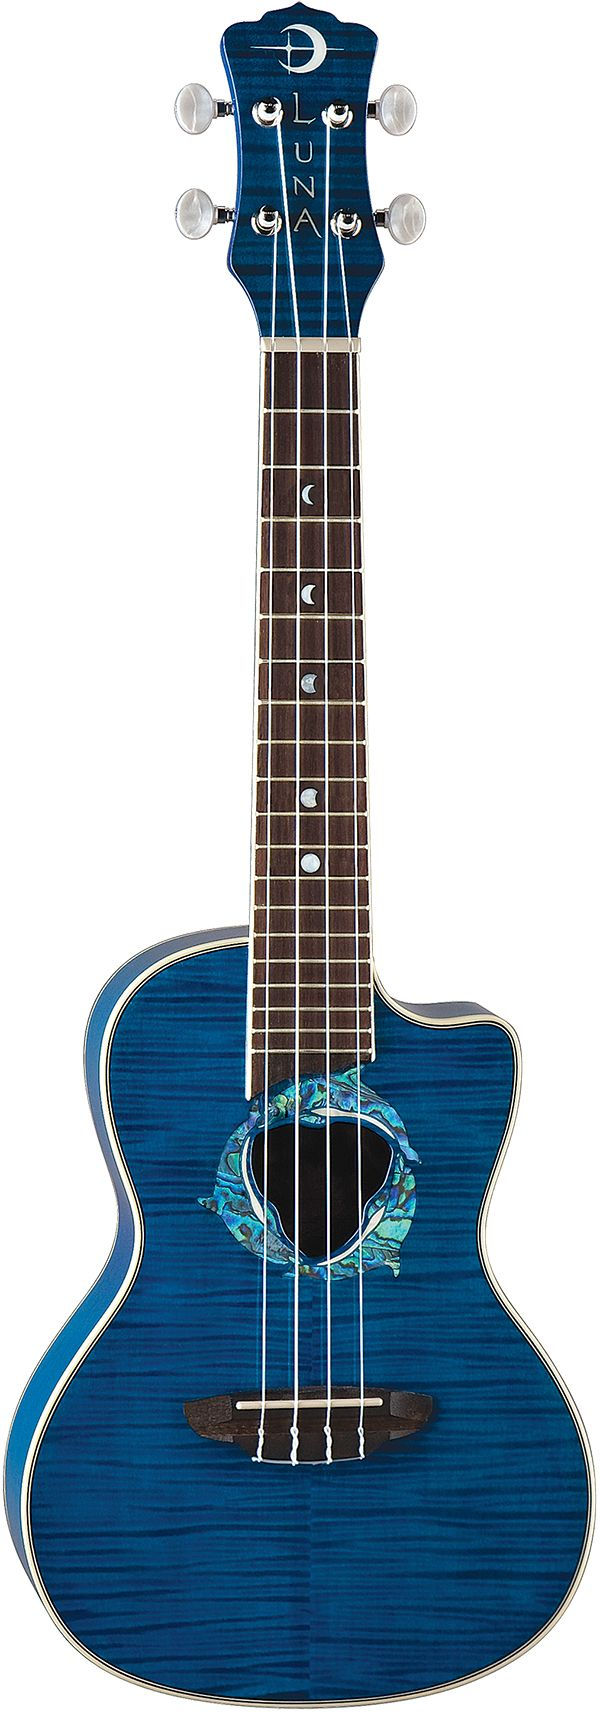 Deb: Luna Dolphin ukulele. I got this used at Watermelon Music in Davis, CA $199.99  This is my Ukulele #2